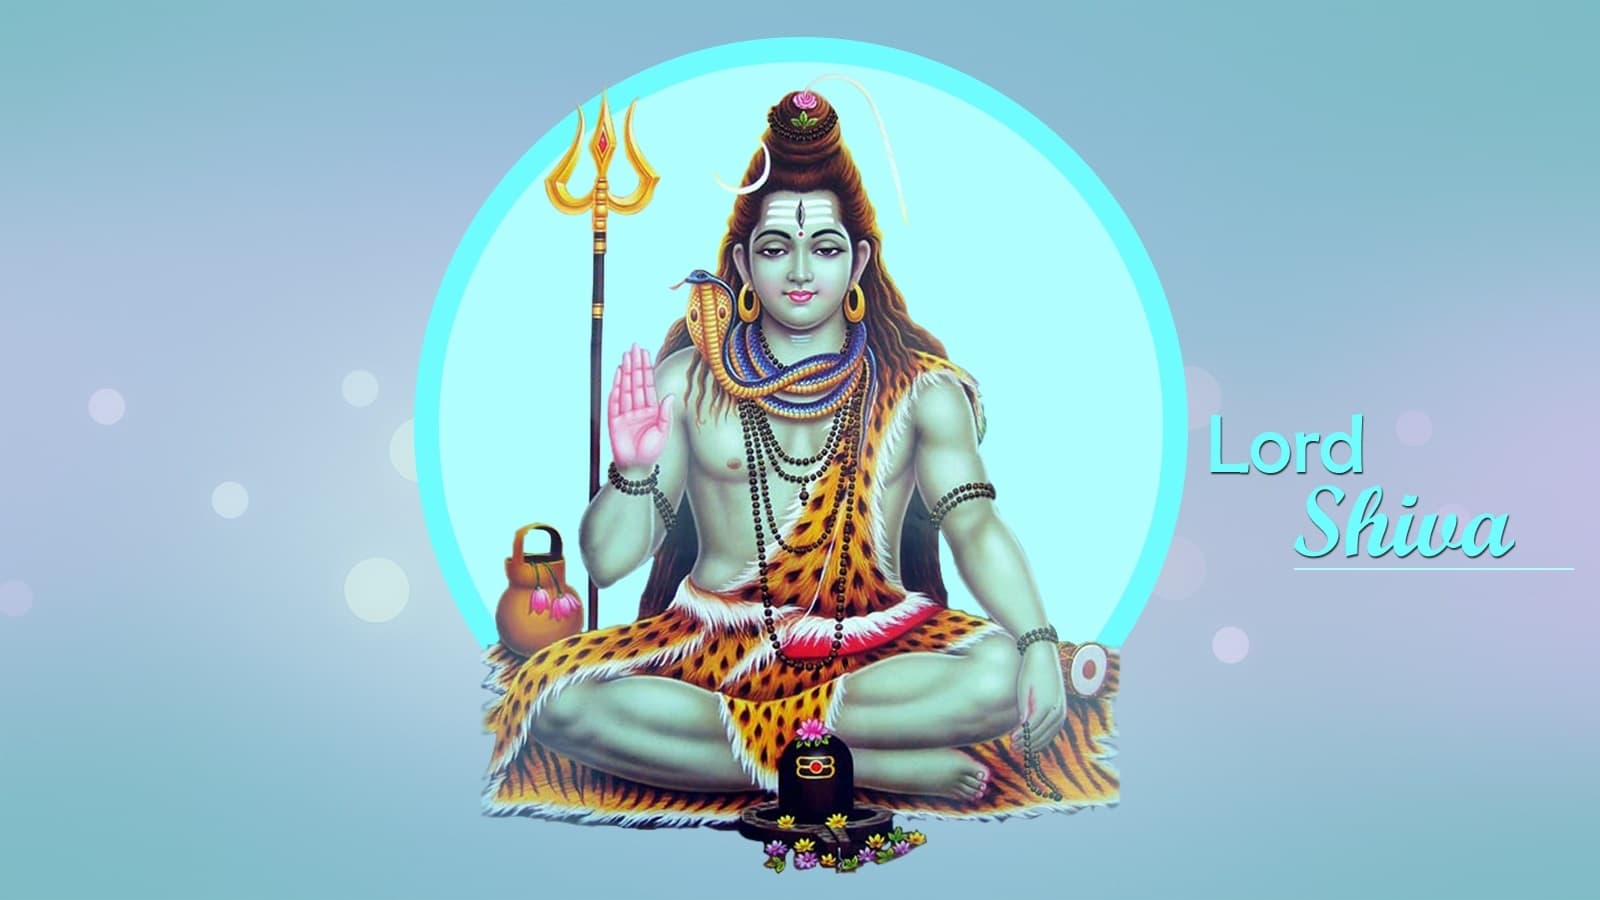 Lord Shiva Wallpapers: Lord Shiva HD Wallpapers